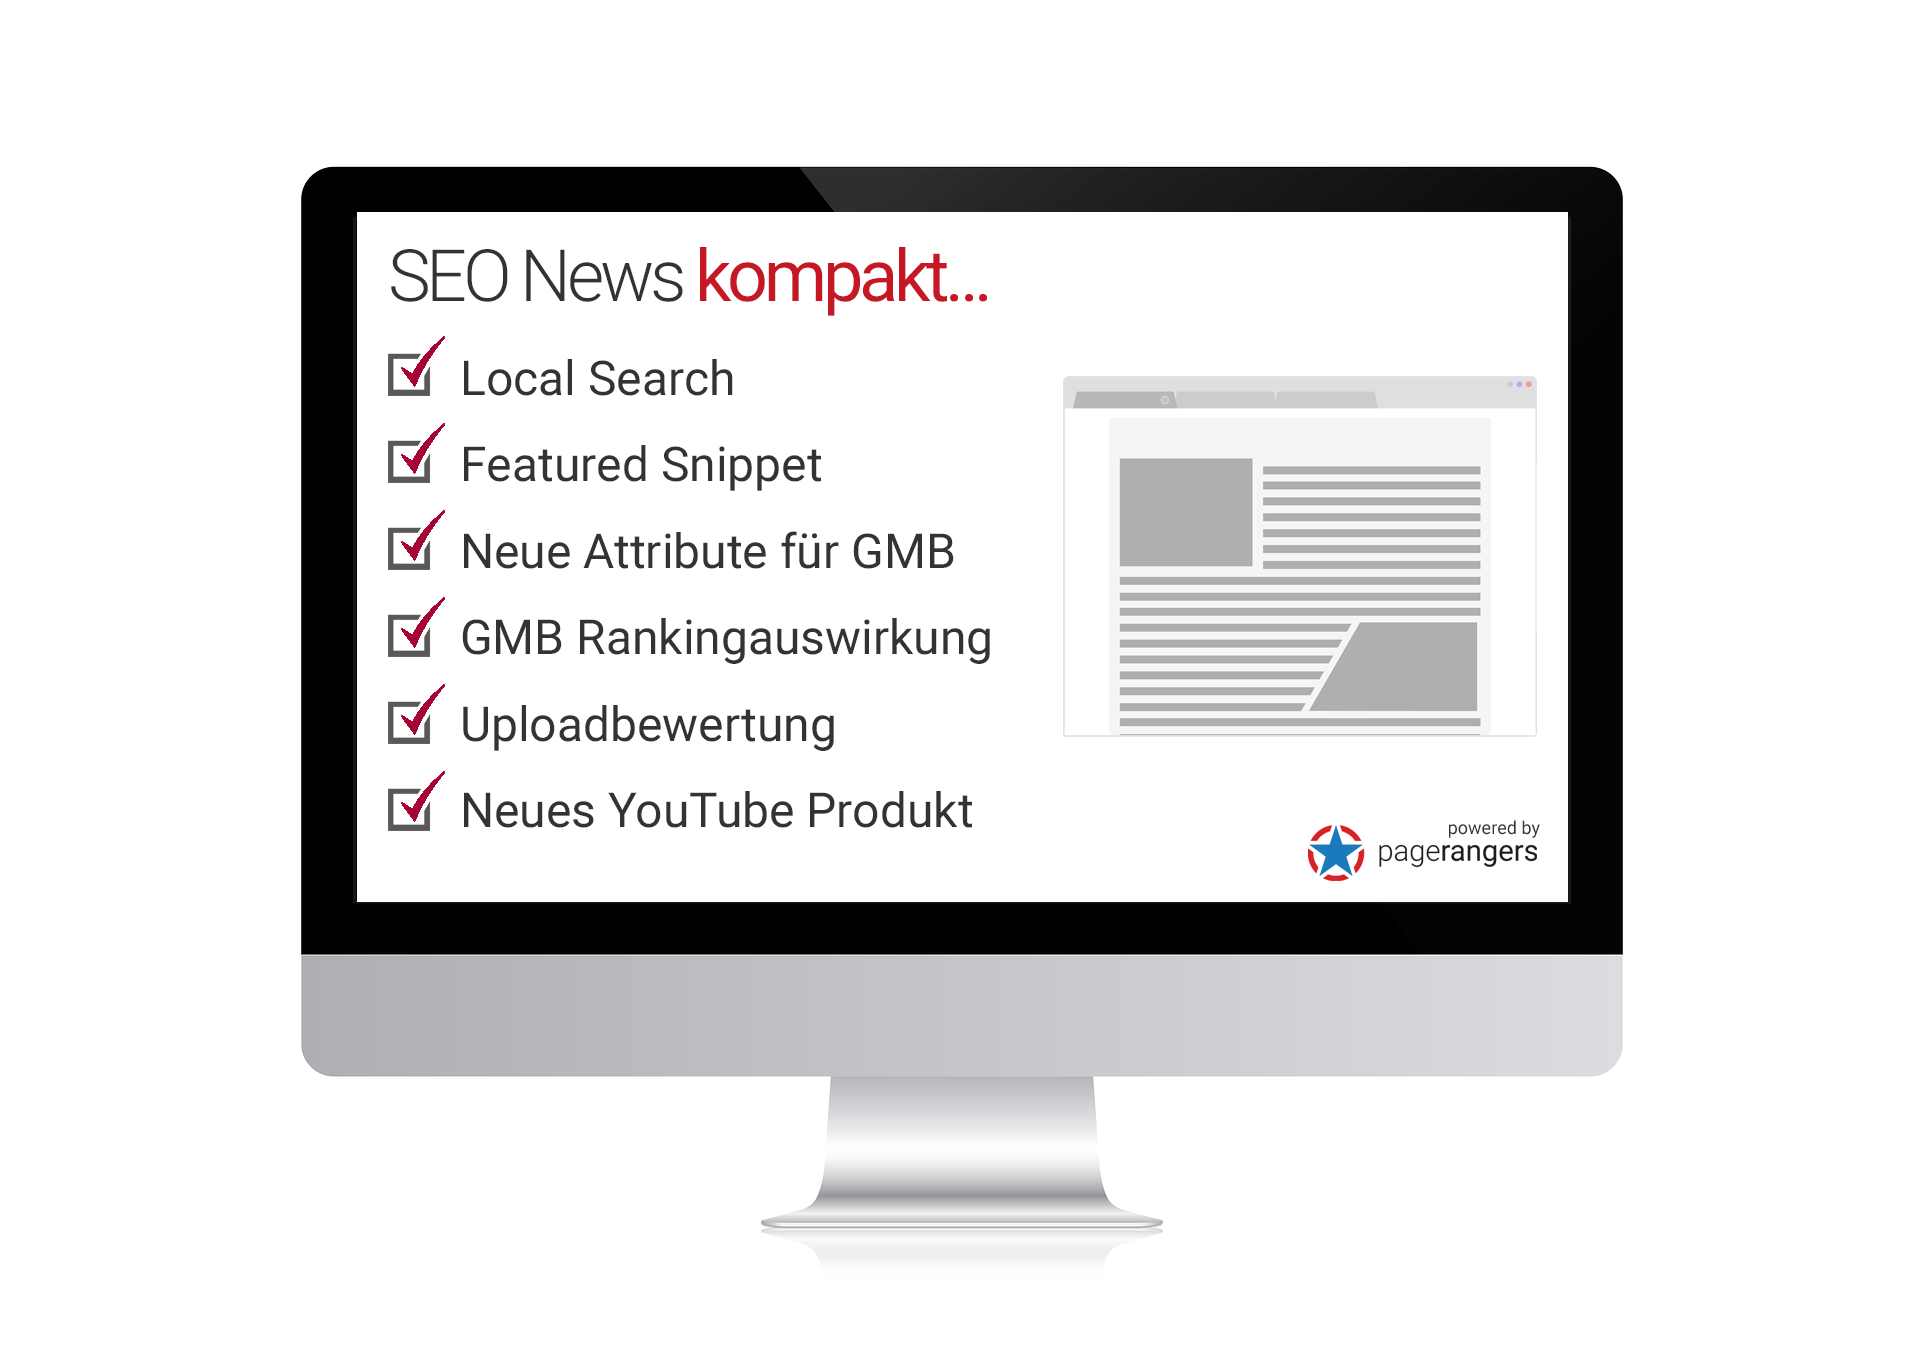 Local Search, Featured Snippet, Neue Attribute für GMB, GMB Rankingauswirkung, Uploadbewertung, Neues YouTube Produkt